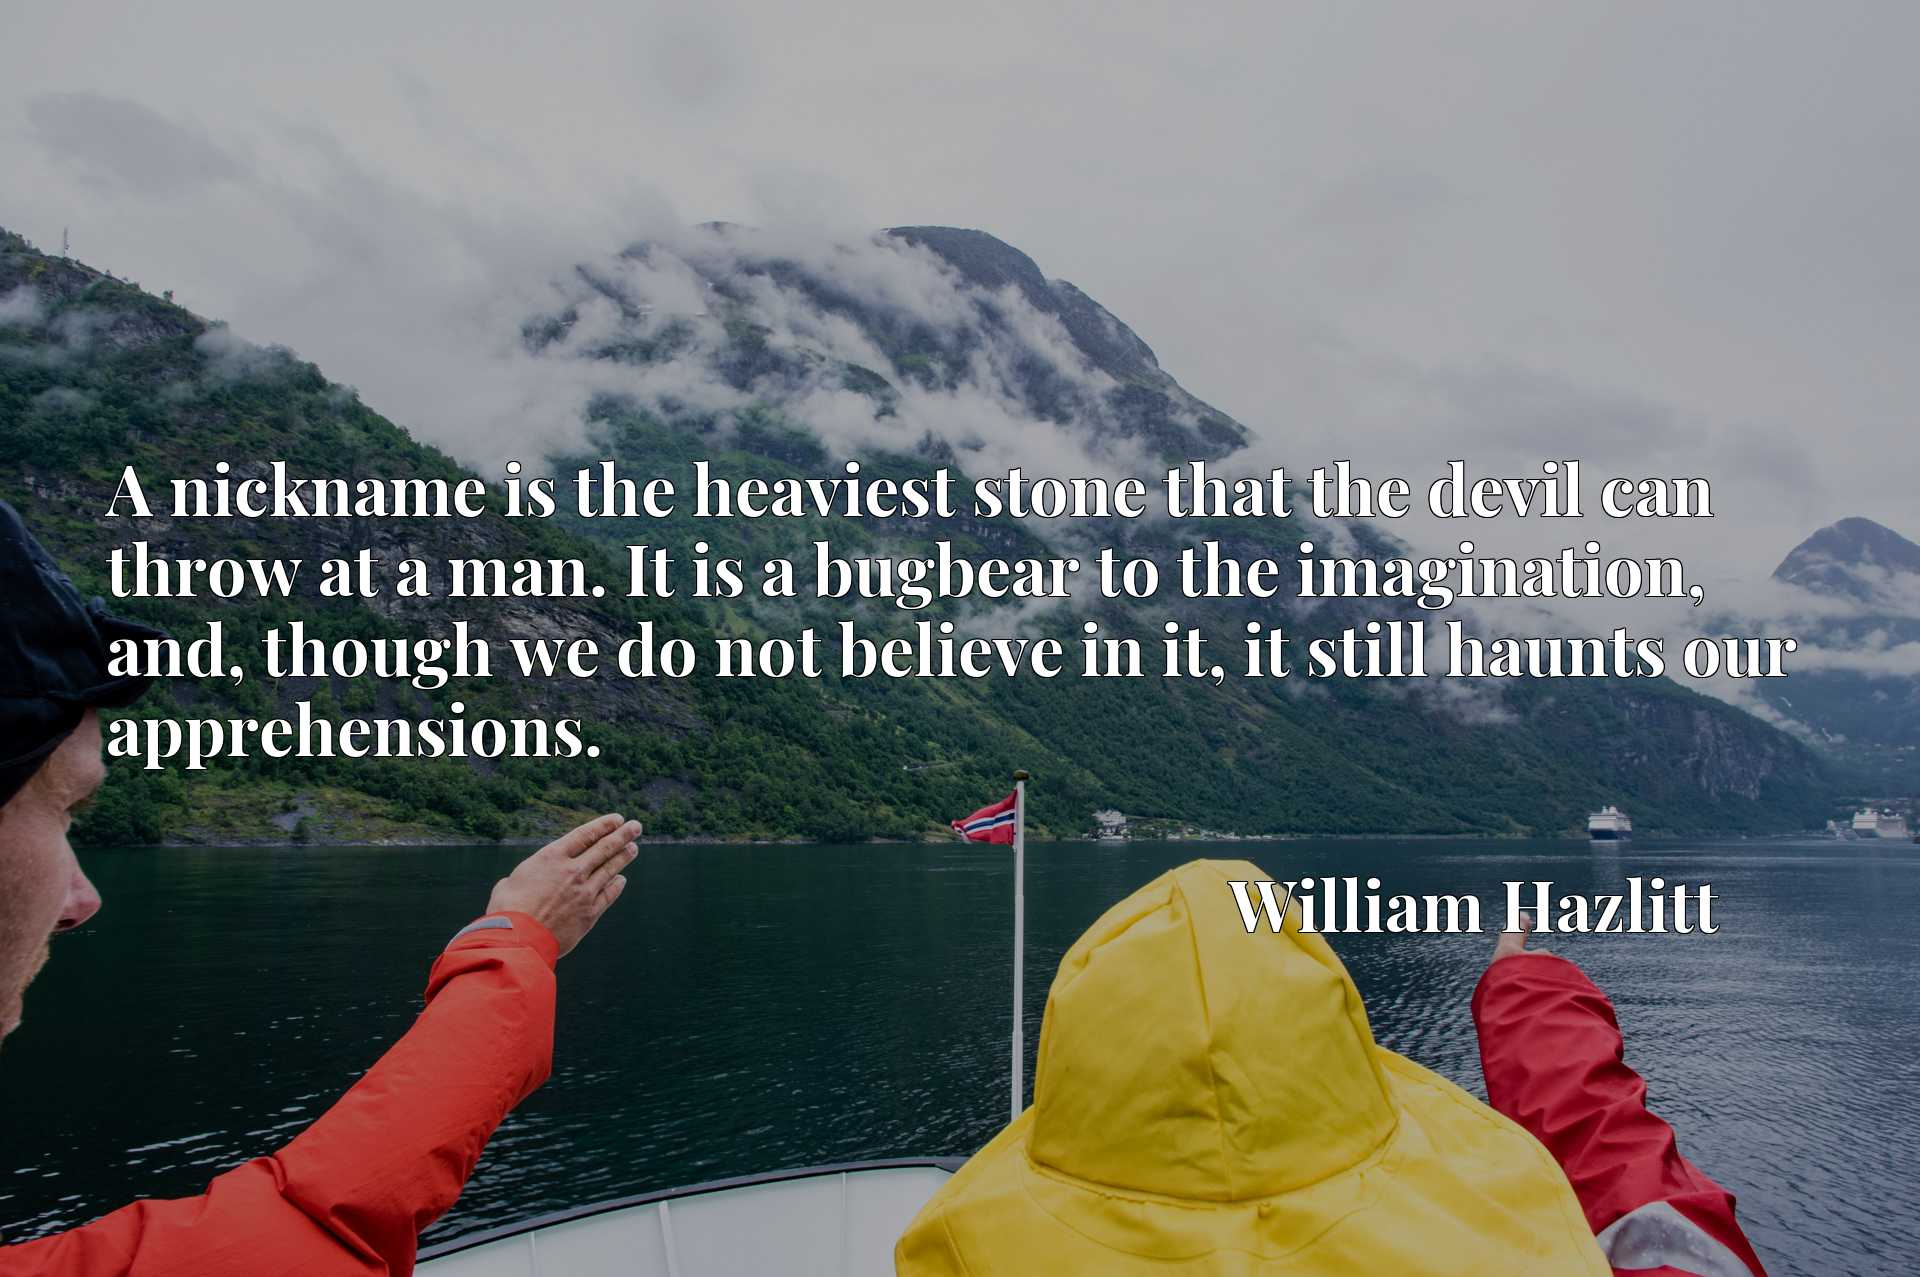 Quote Picture :A nickname is the heaviest stone that the devil can throw at a man. It is a bugbear to the imagination, and, though we do not believe in it, it still haunts our apprehensions.